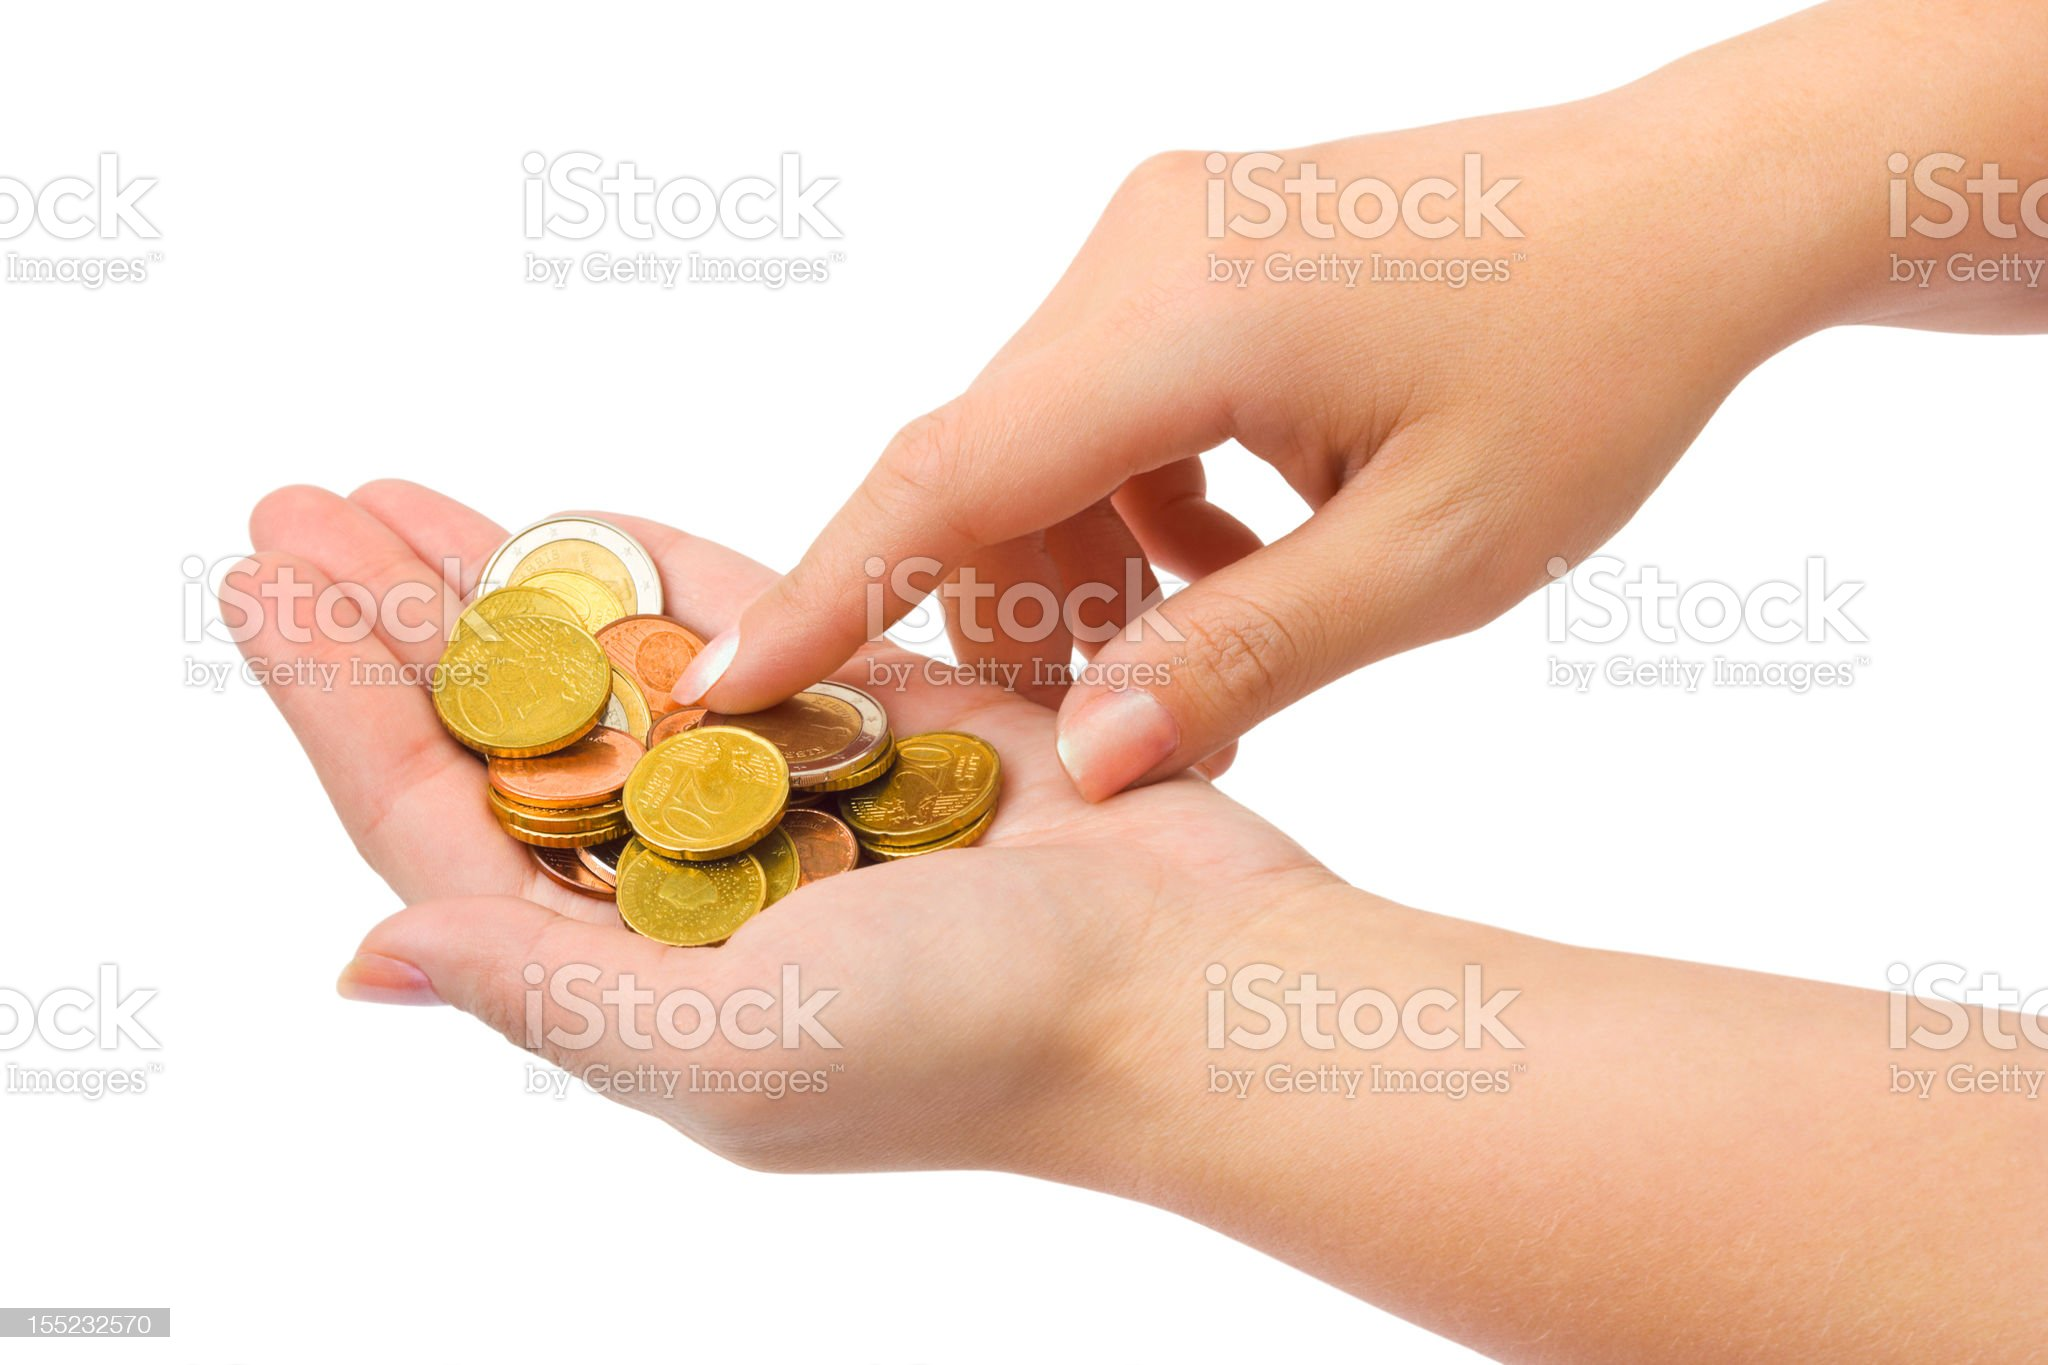 Hands counting money royalty-free stock photo